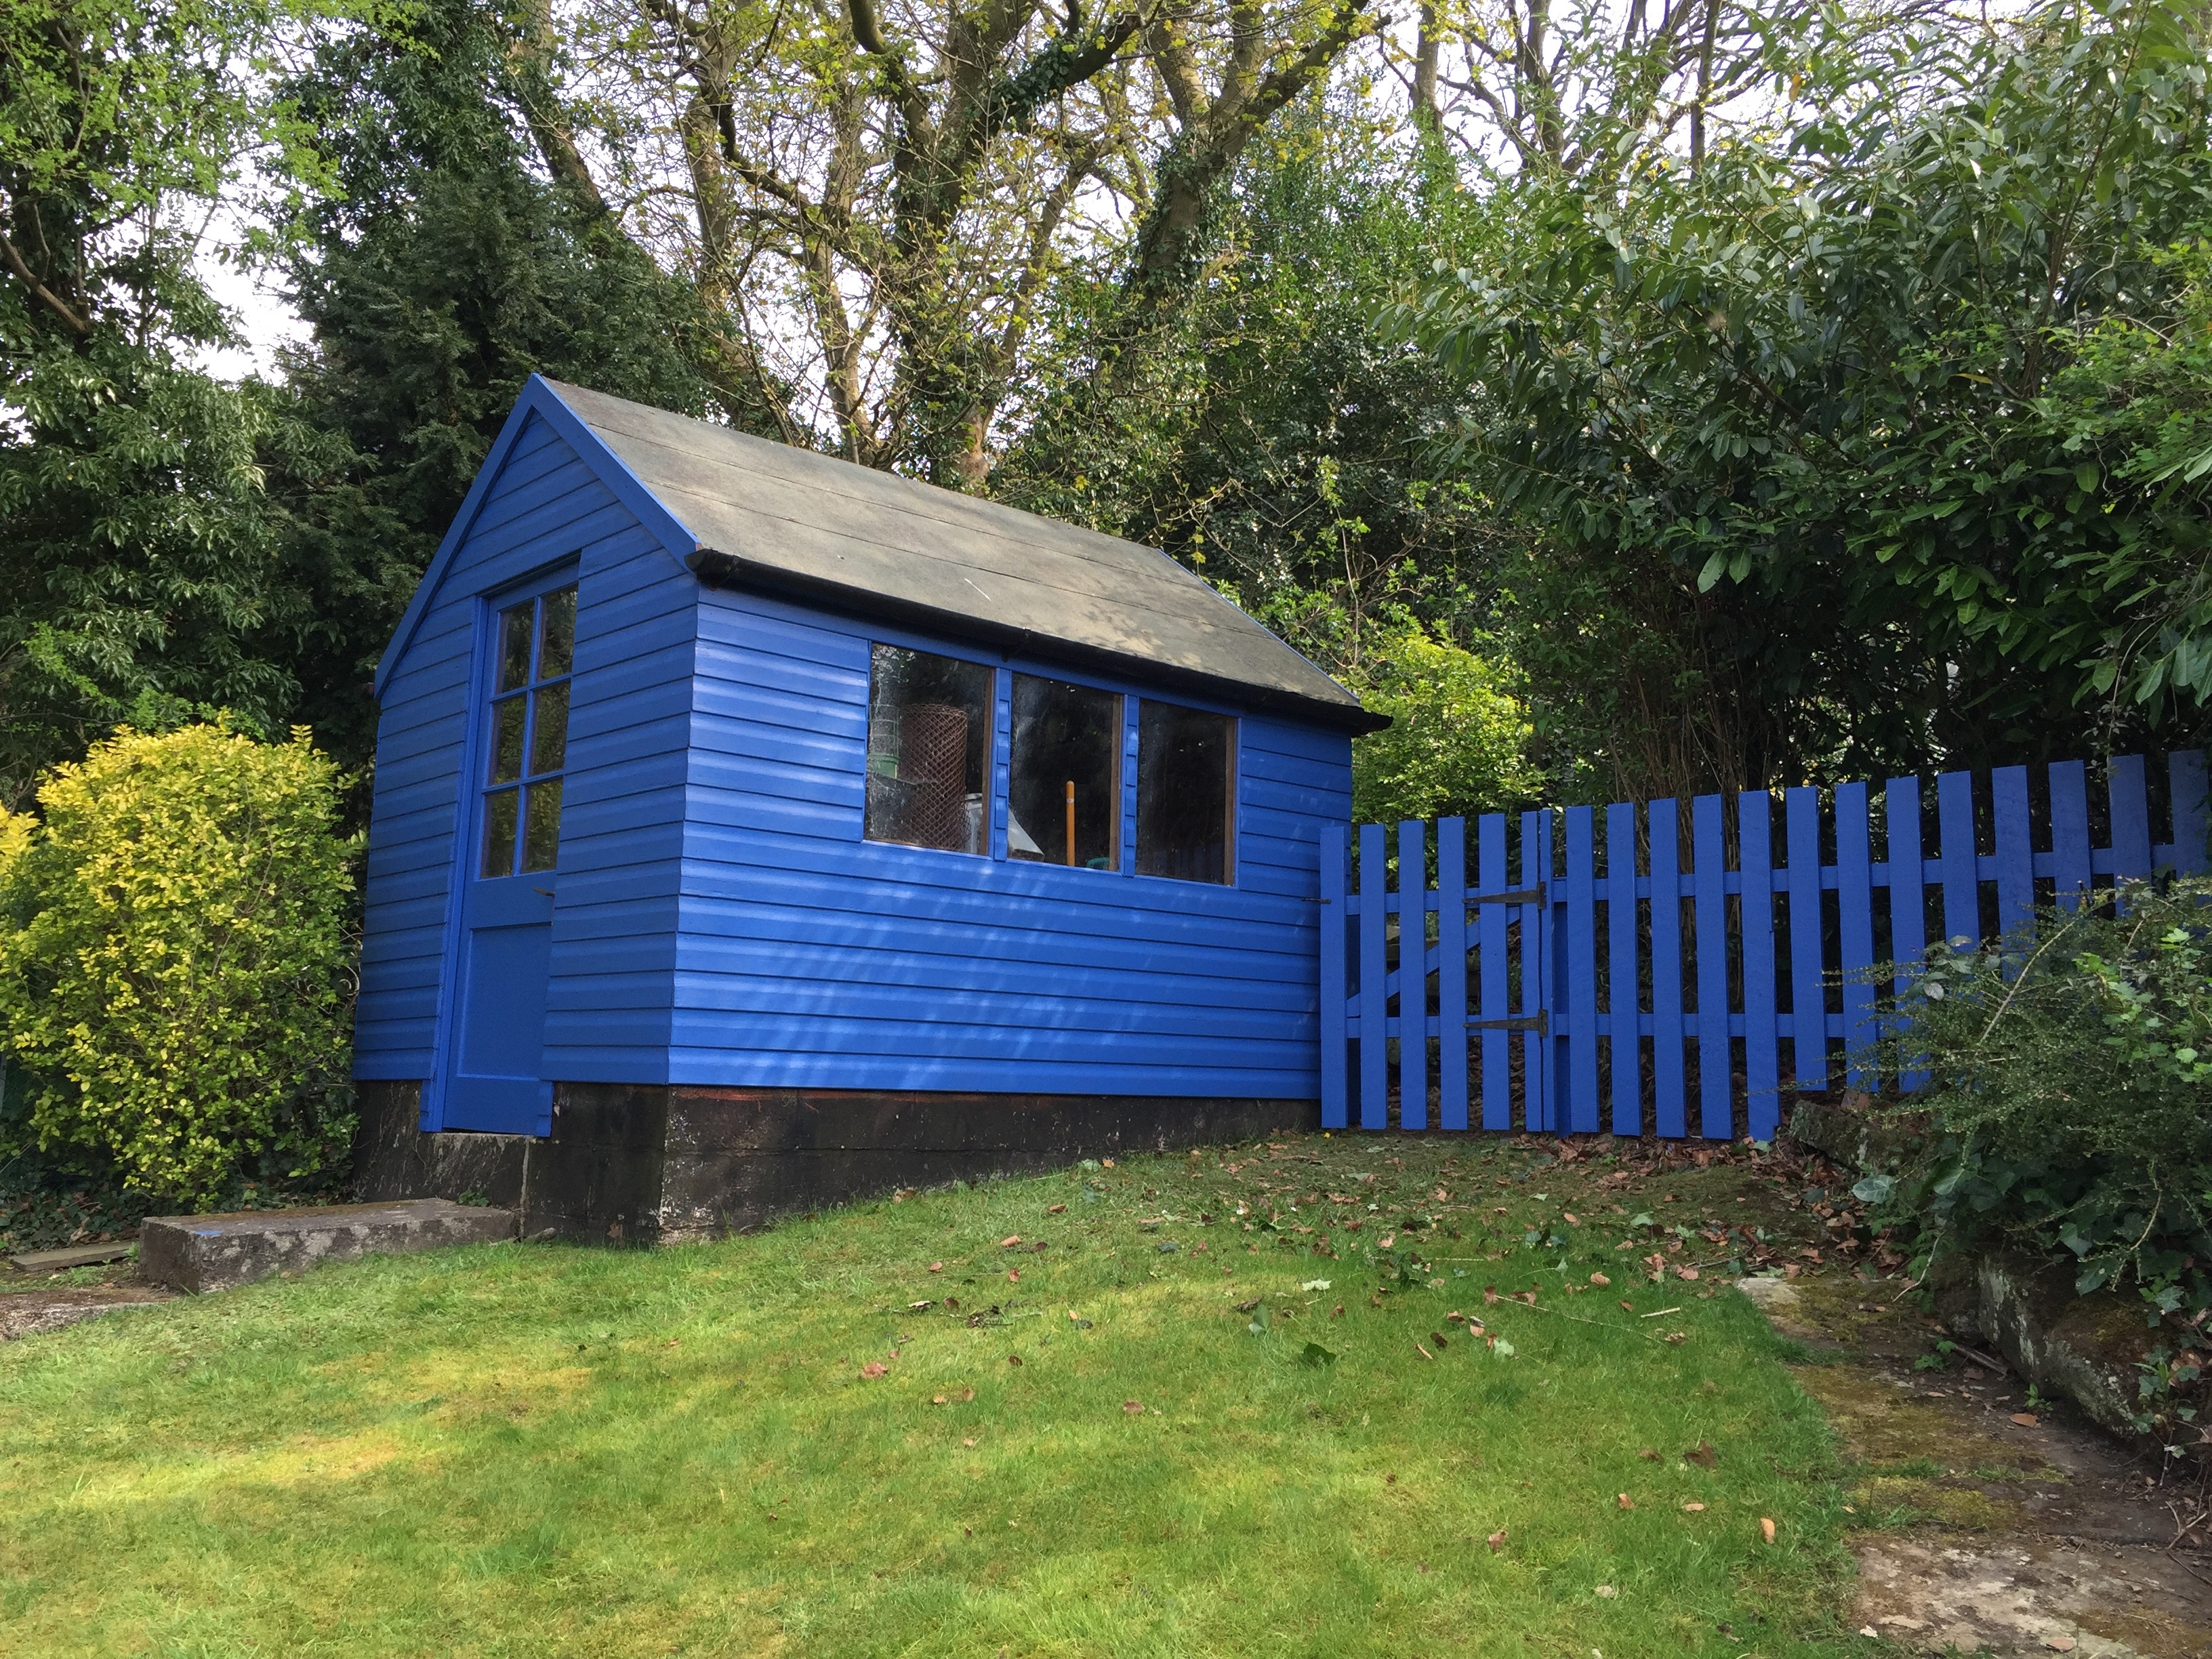 Garden Shed & Fence - painting